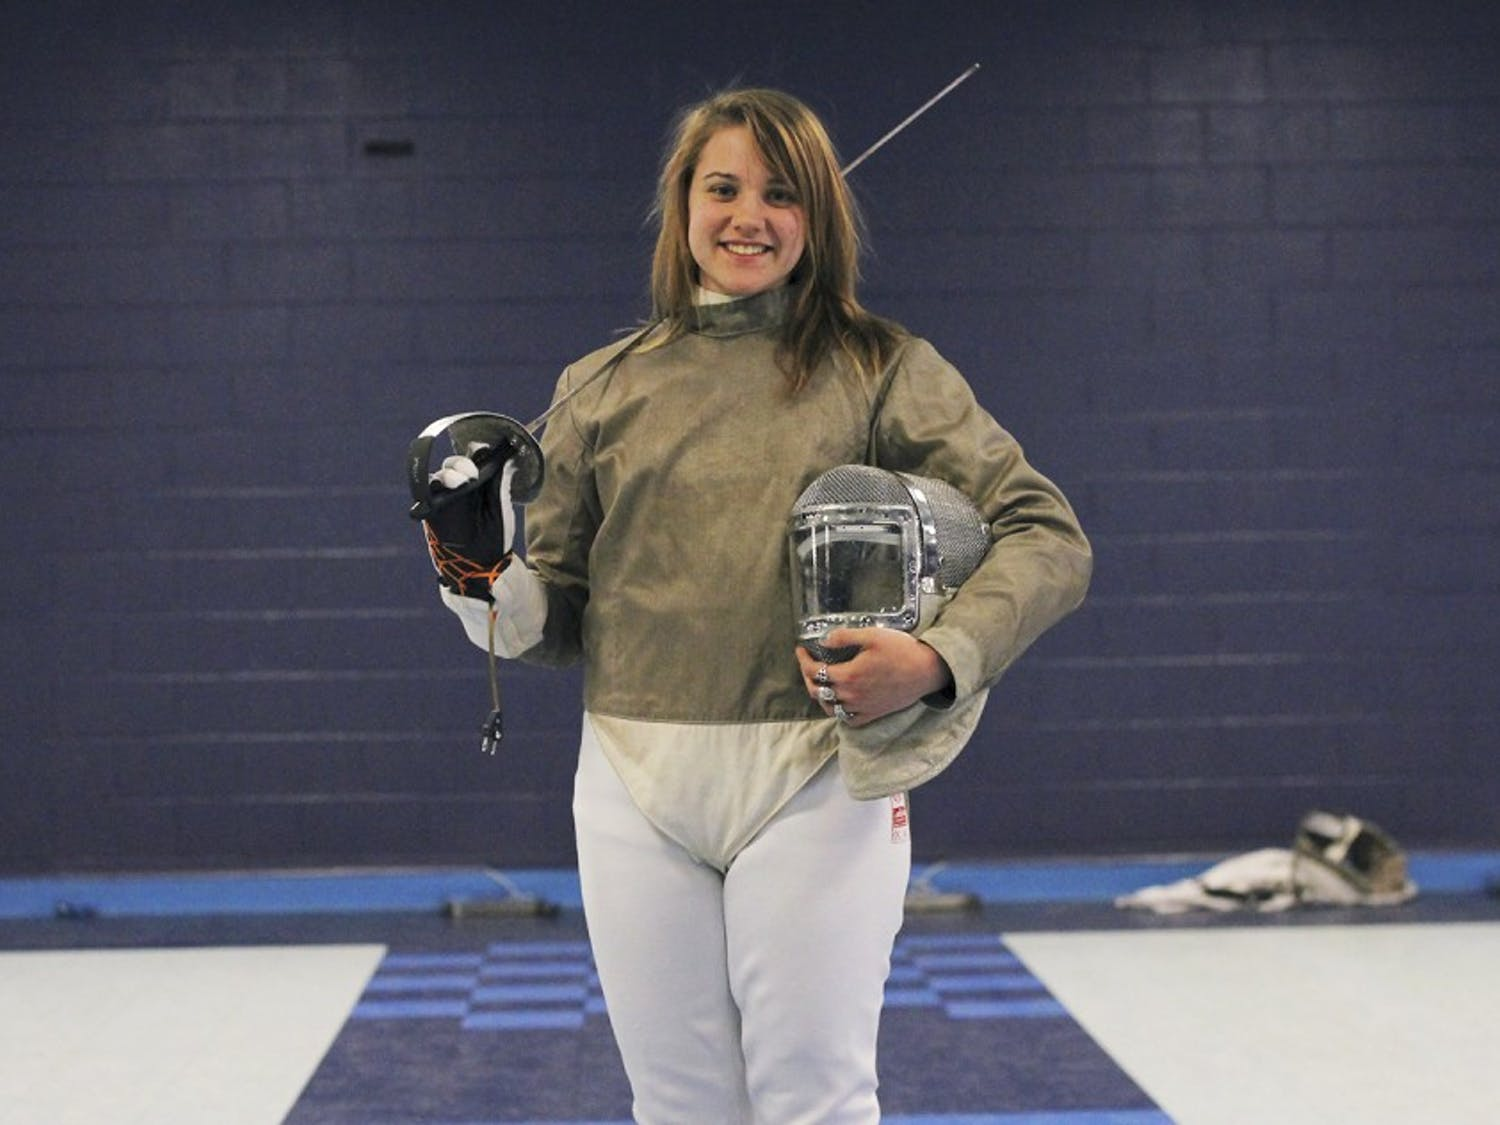 Gillian Litynski, a sophomore from New York, is one of four Tar Heels who qualified for the 2013 NCAA Fencing Championship. Litynski will compete in women's saber in San Antonio, Texas this weekend. This is her second appearance at the championship.